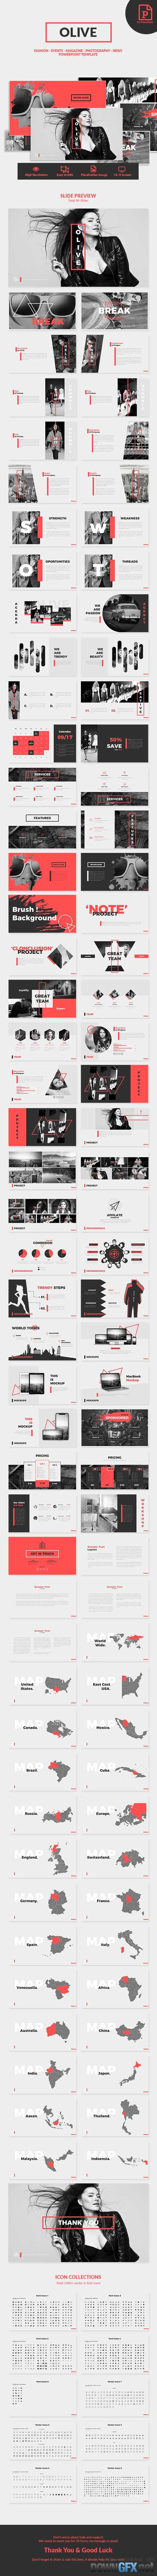 Olive - Creative PowerPoint Template 20738298